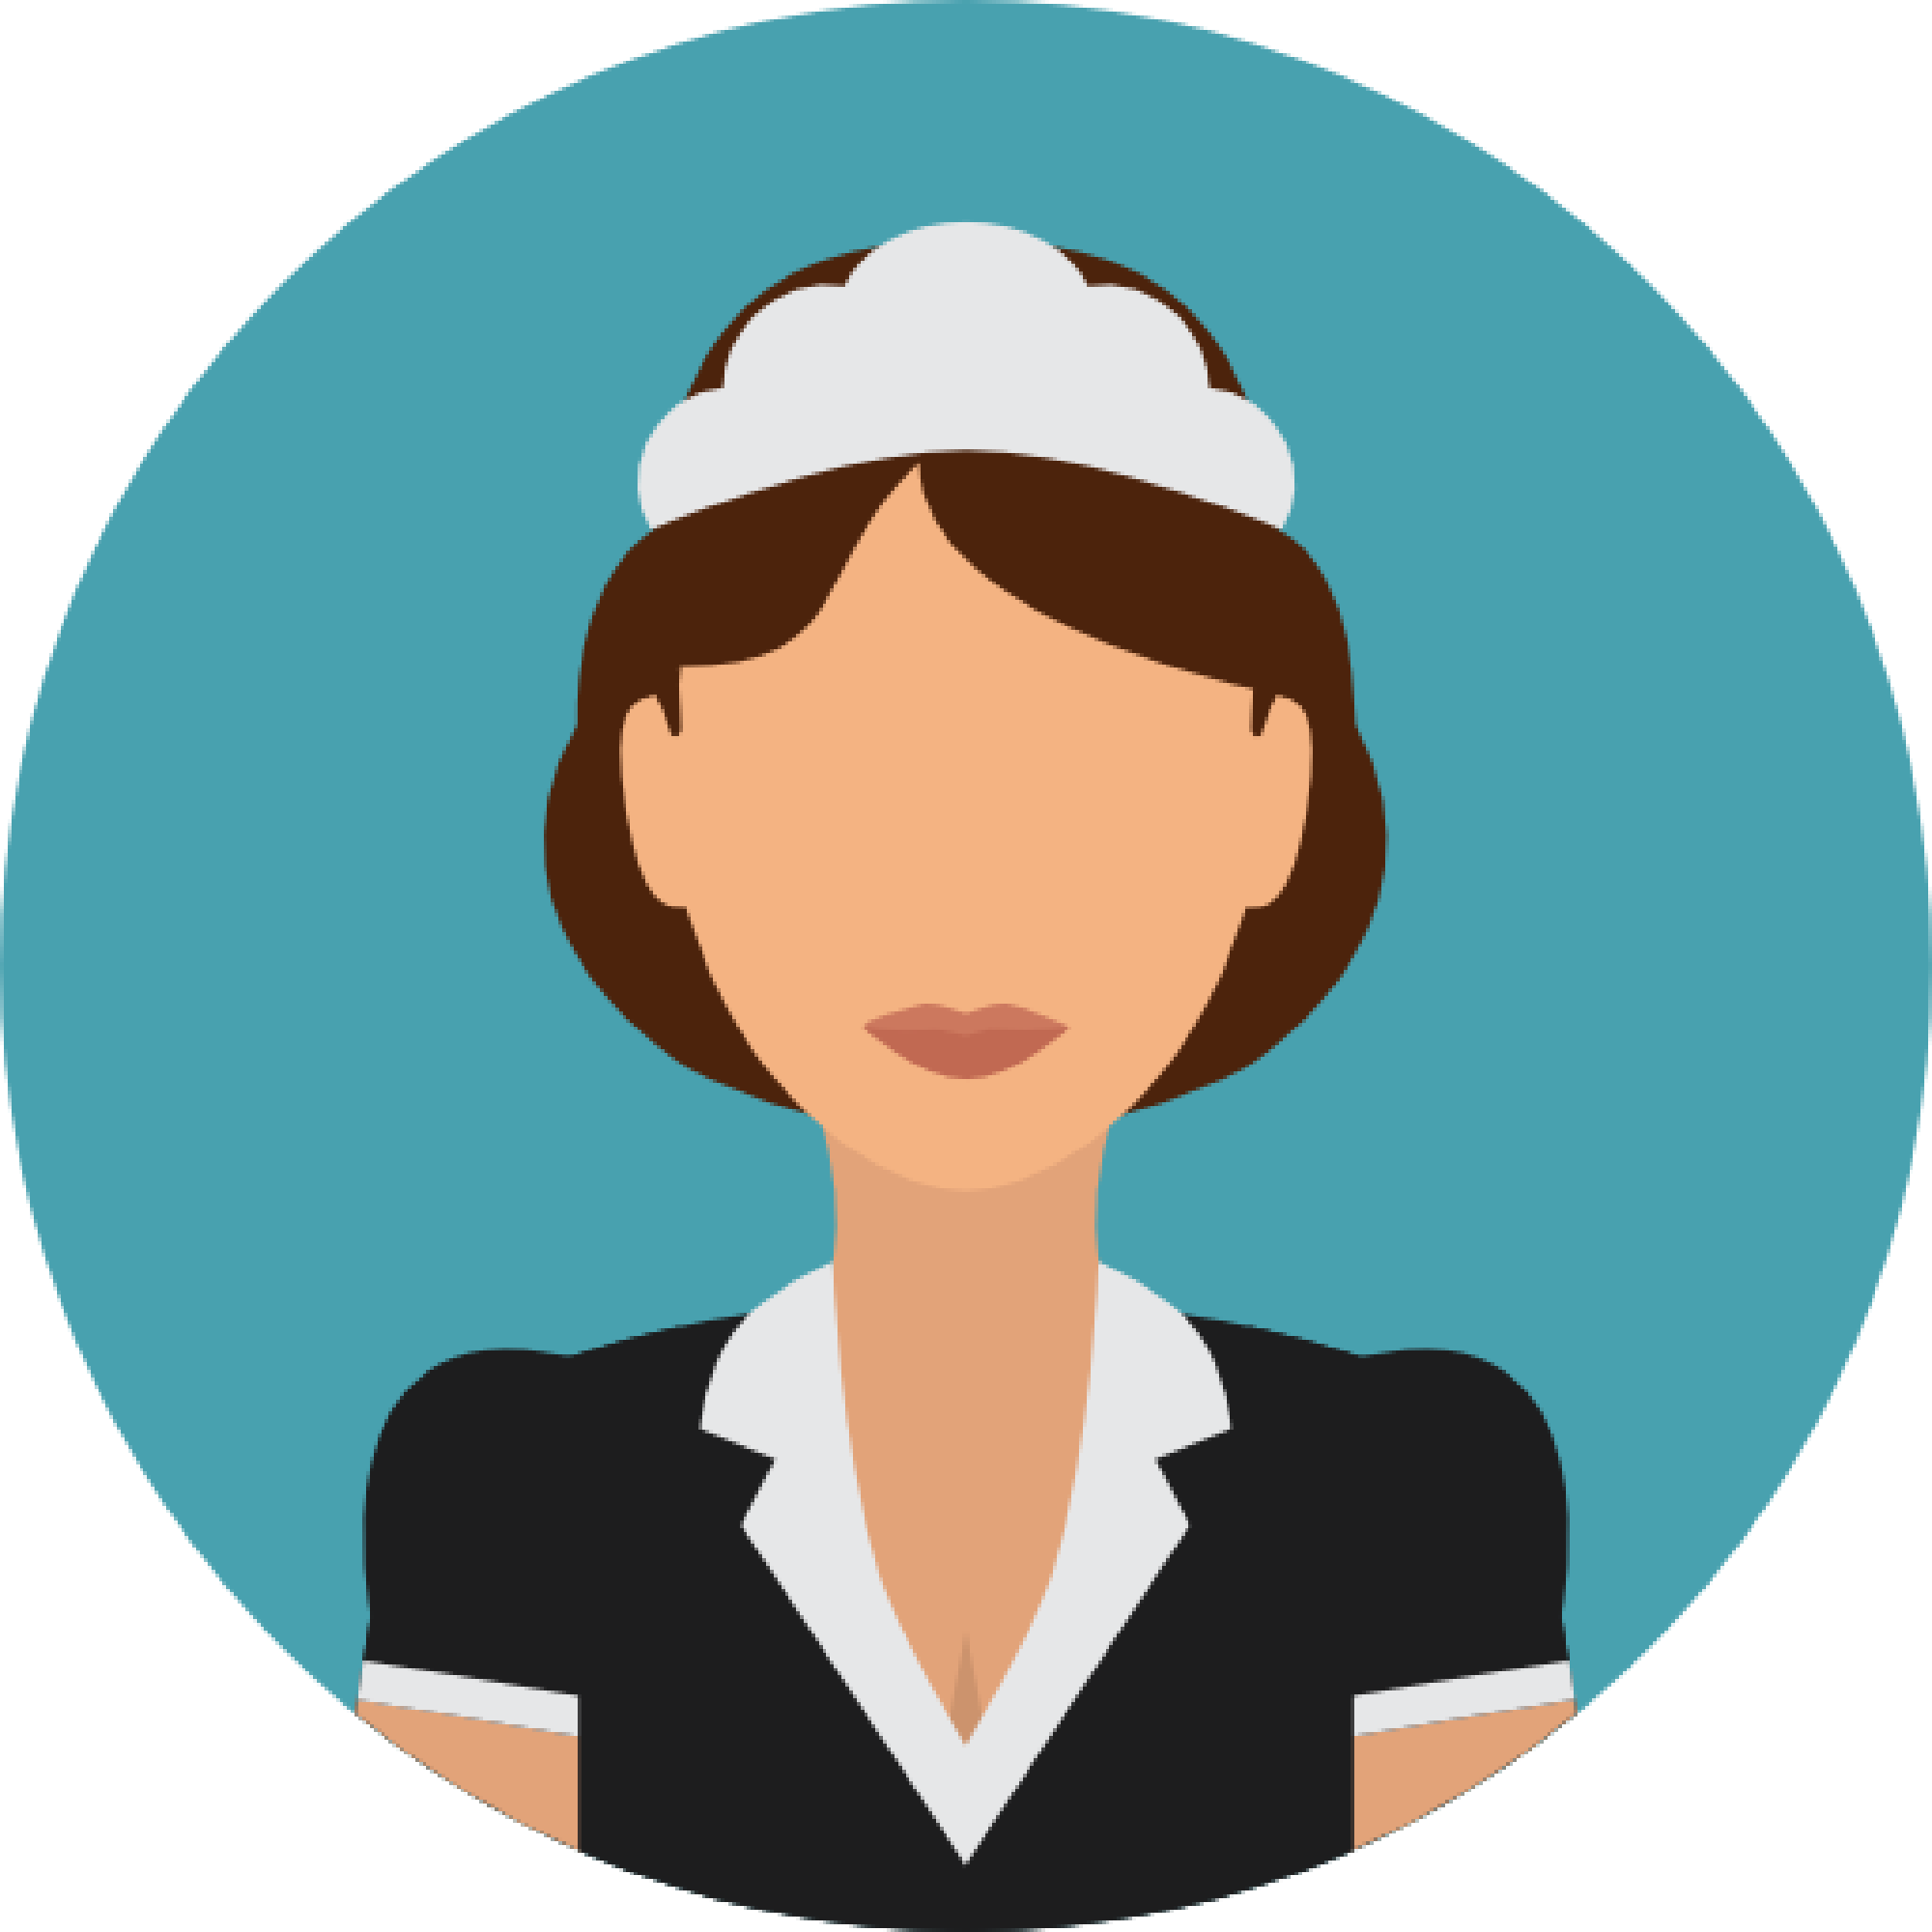 Computer icons avatar cleaning. Housekeeping clipart hotel housekeeping